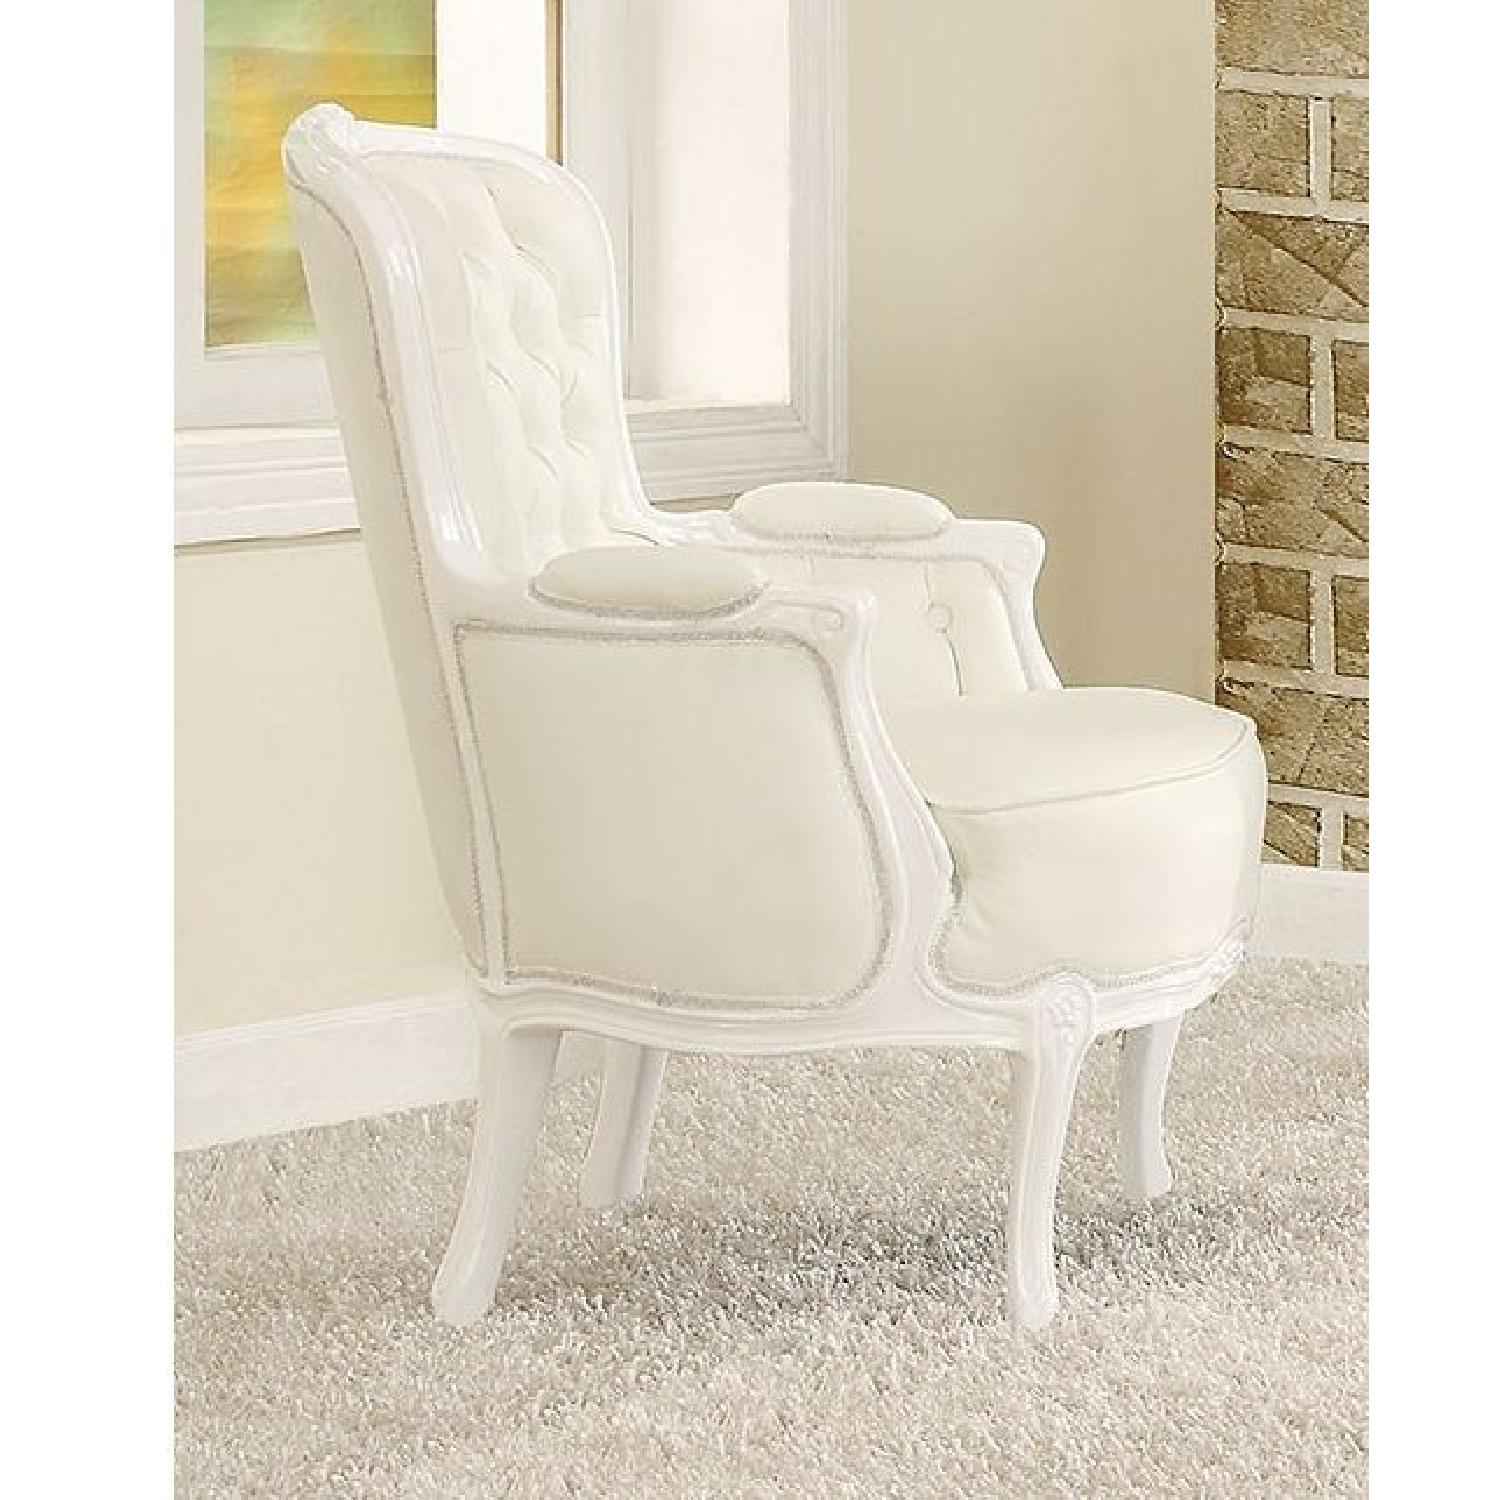 White Accent Chair w/ Button Tufted Back & Padded Seat & Armrests - image-1